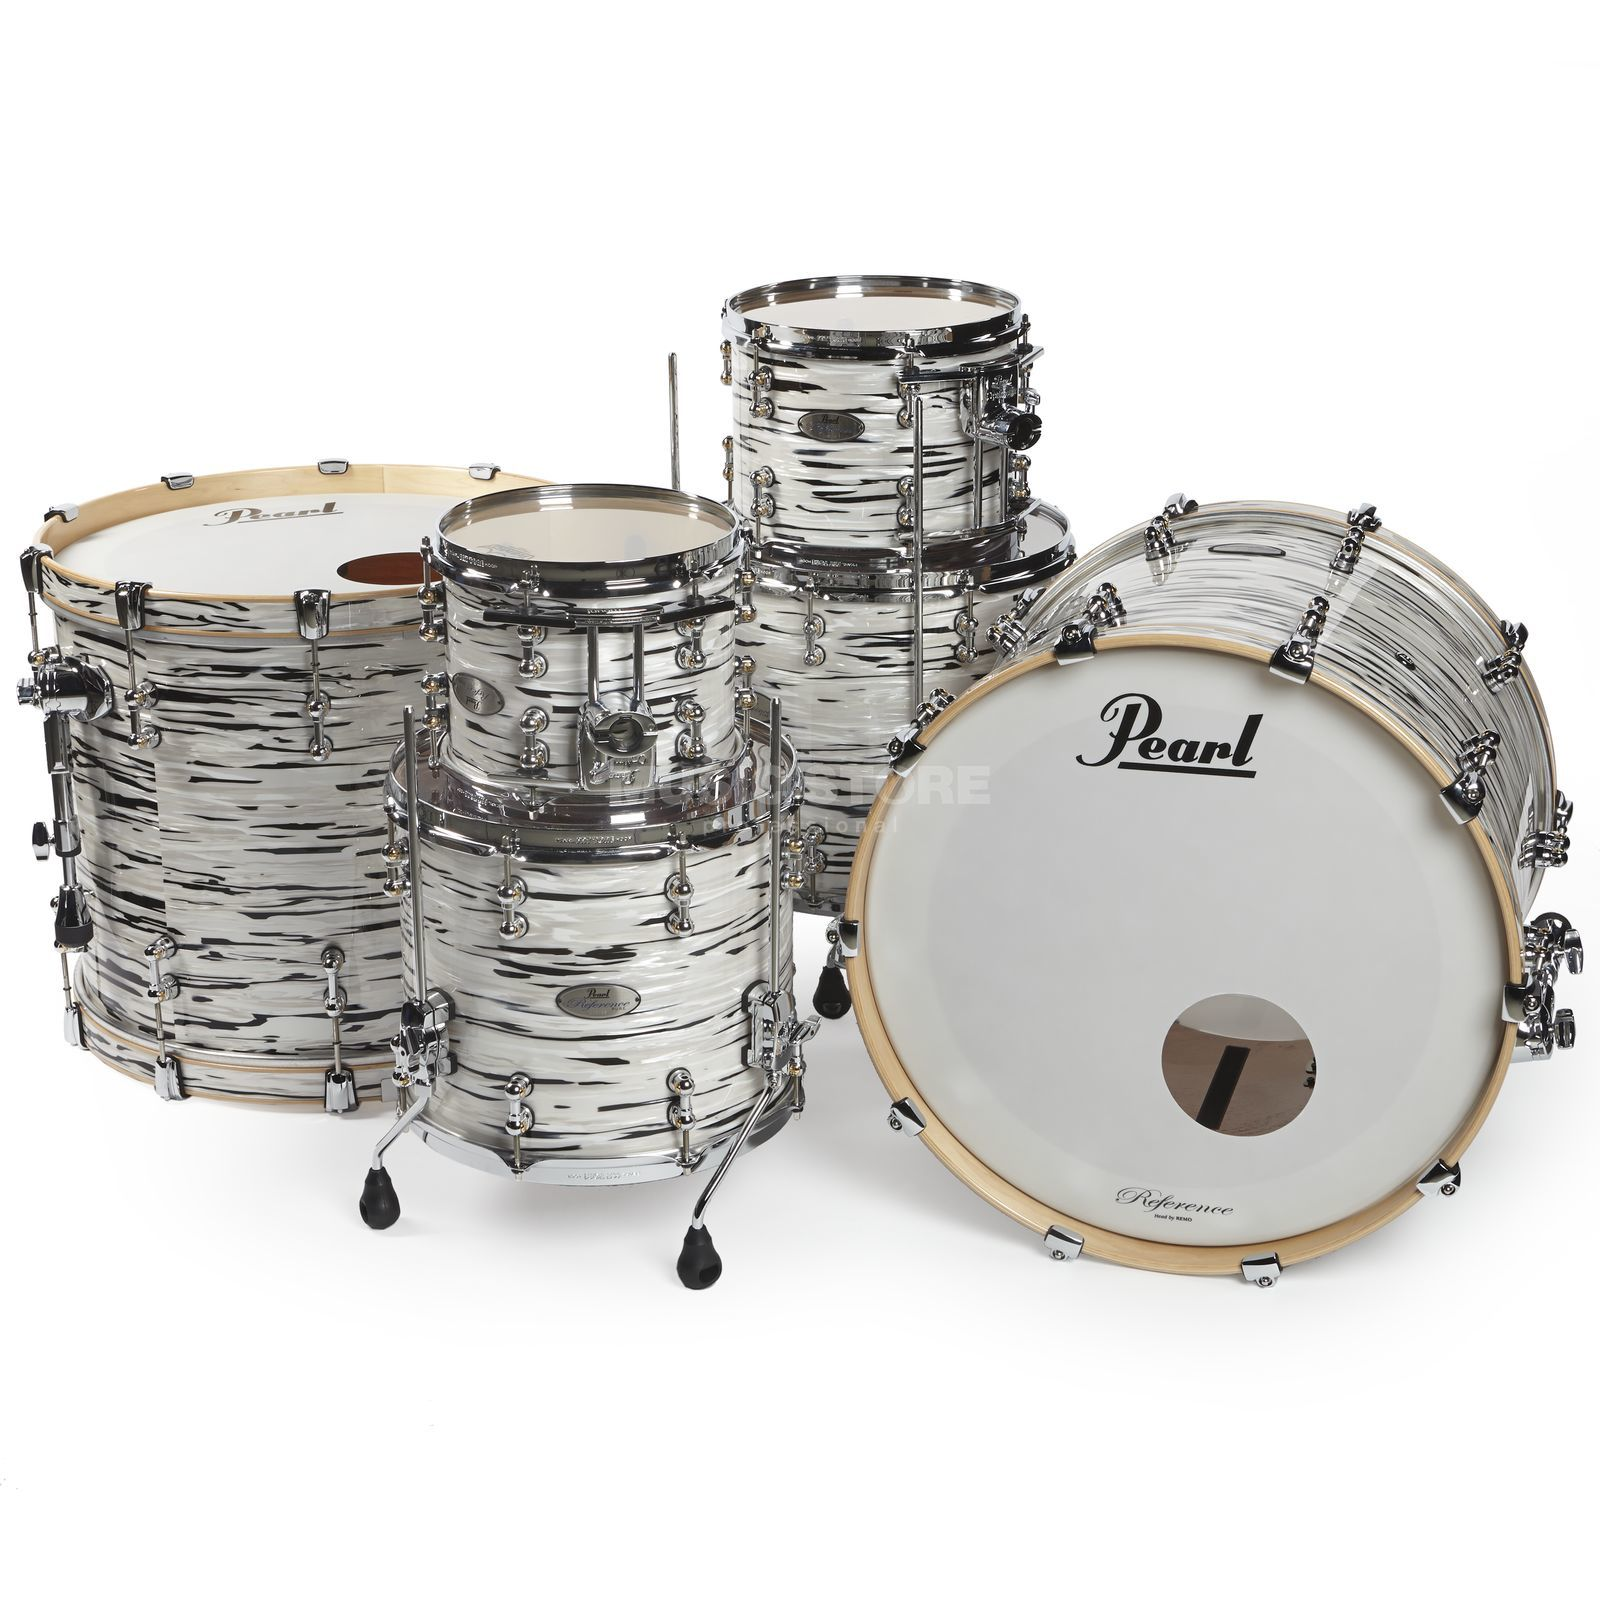 Pearl Reference Pure Double Bass Shell-Set Black & White Oyster Image du produit